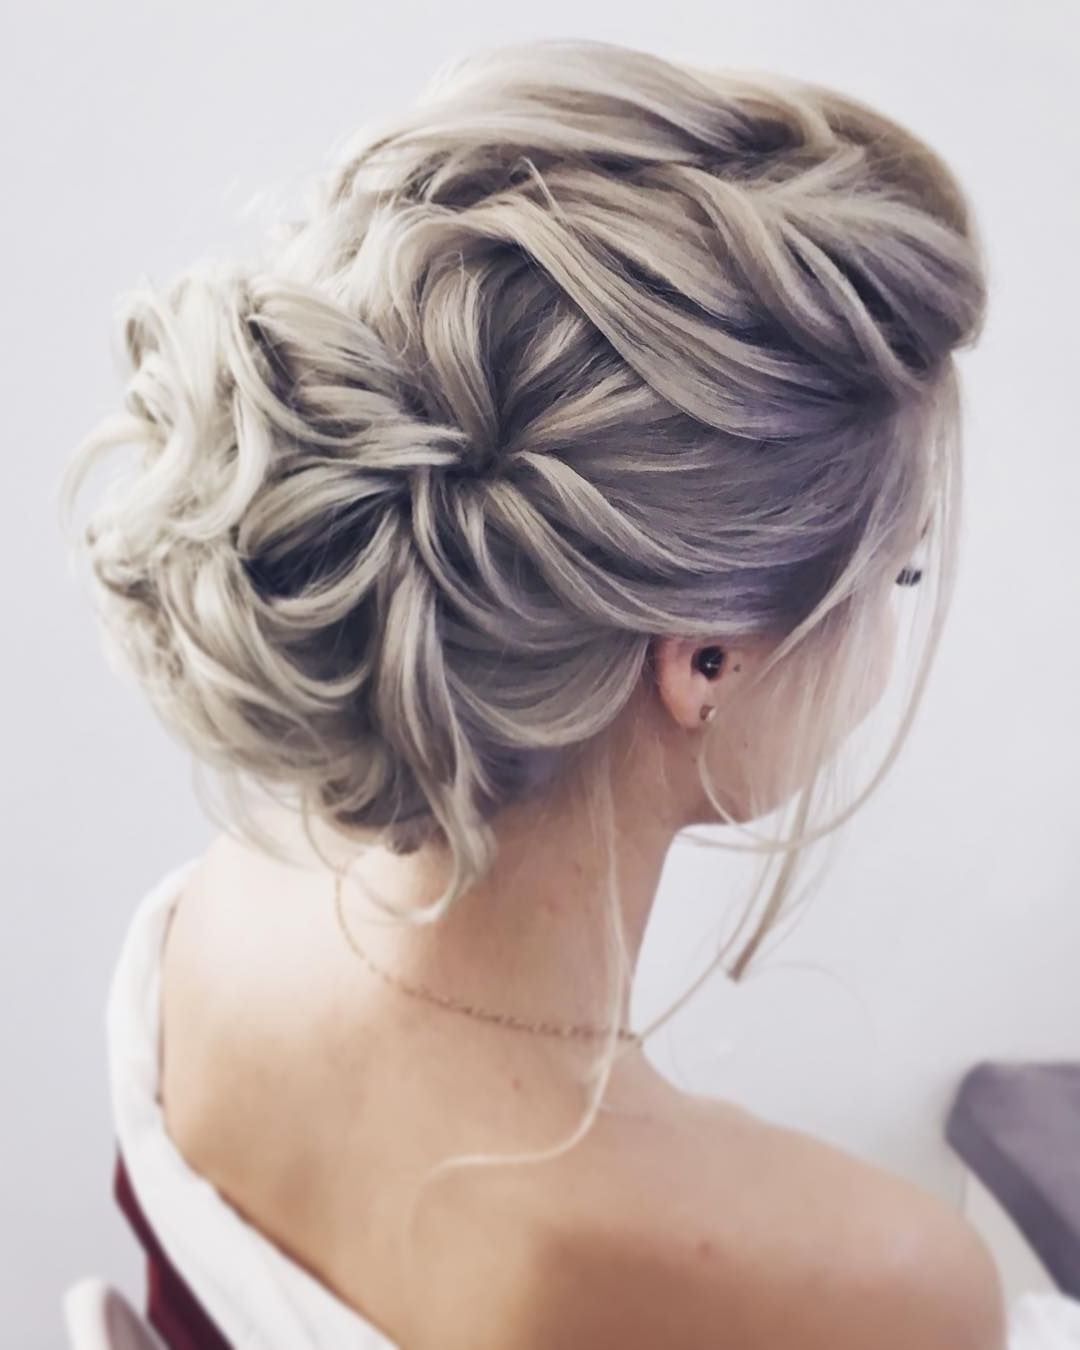 Hair Dos For Wedding Updos Weddings Hairstyles Short Half Up Long Inside Most Current Wedding Hairstyles (View 9 of 15)